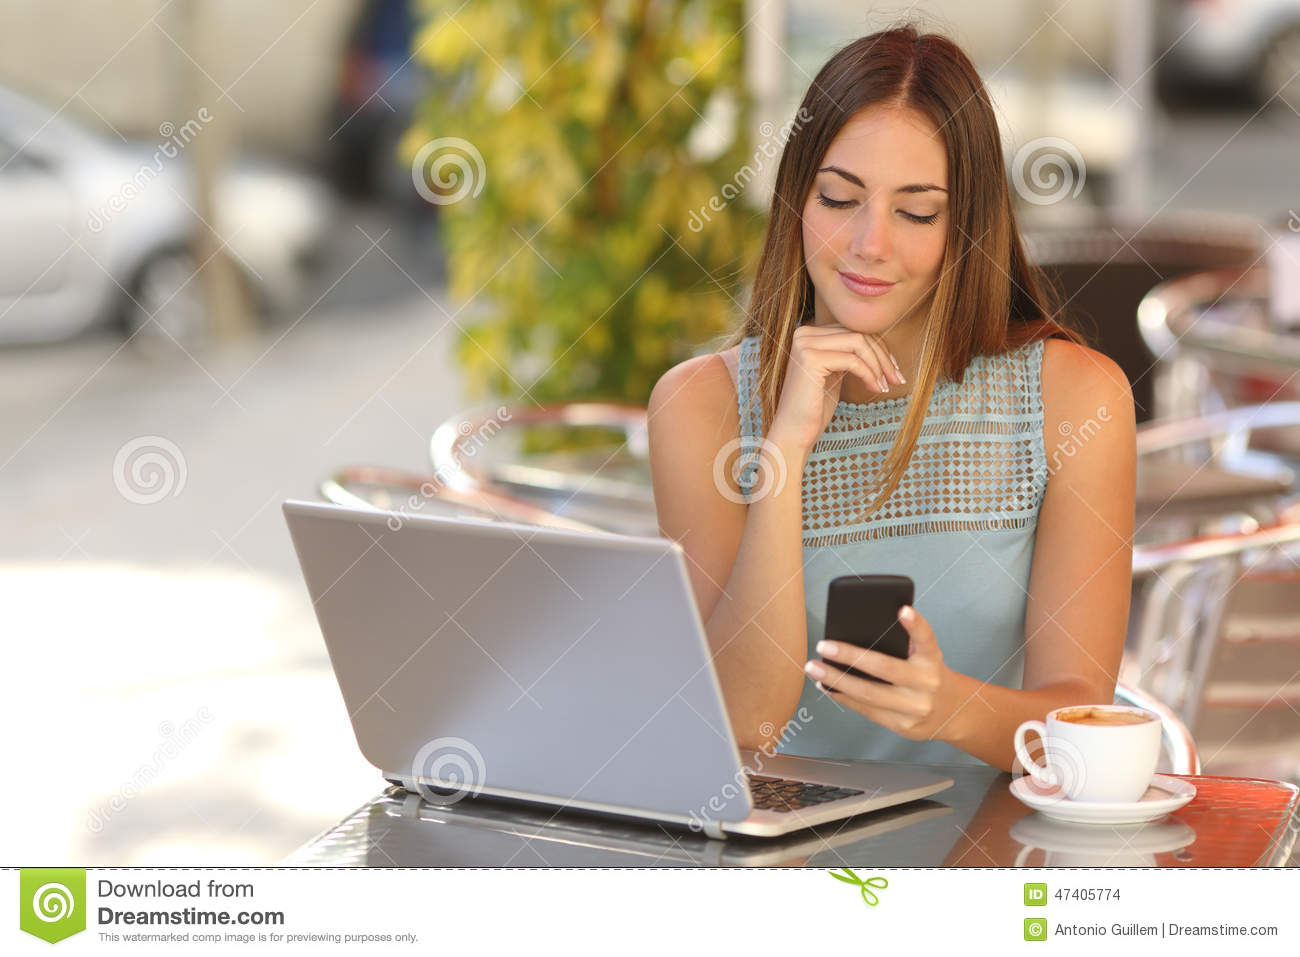 Self employed woman working with her phone and laptop in a restaurant